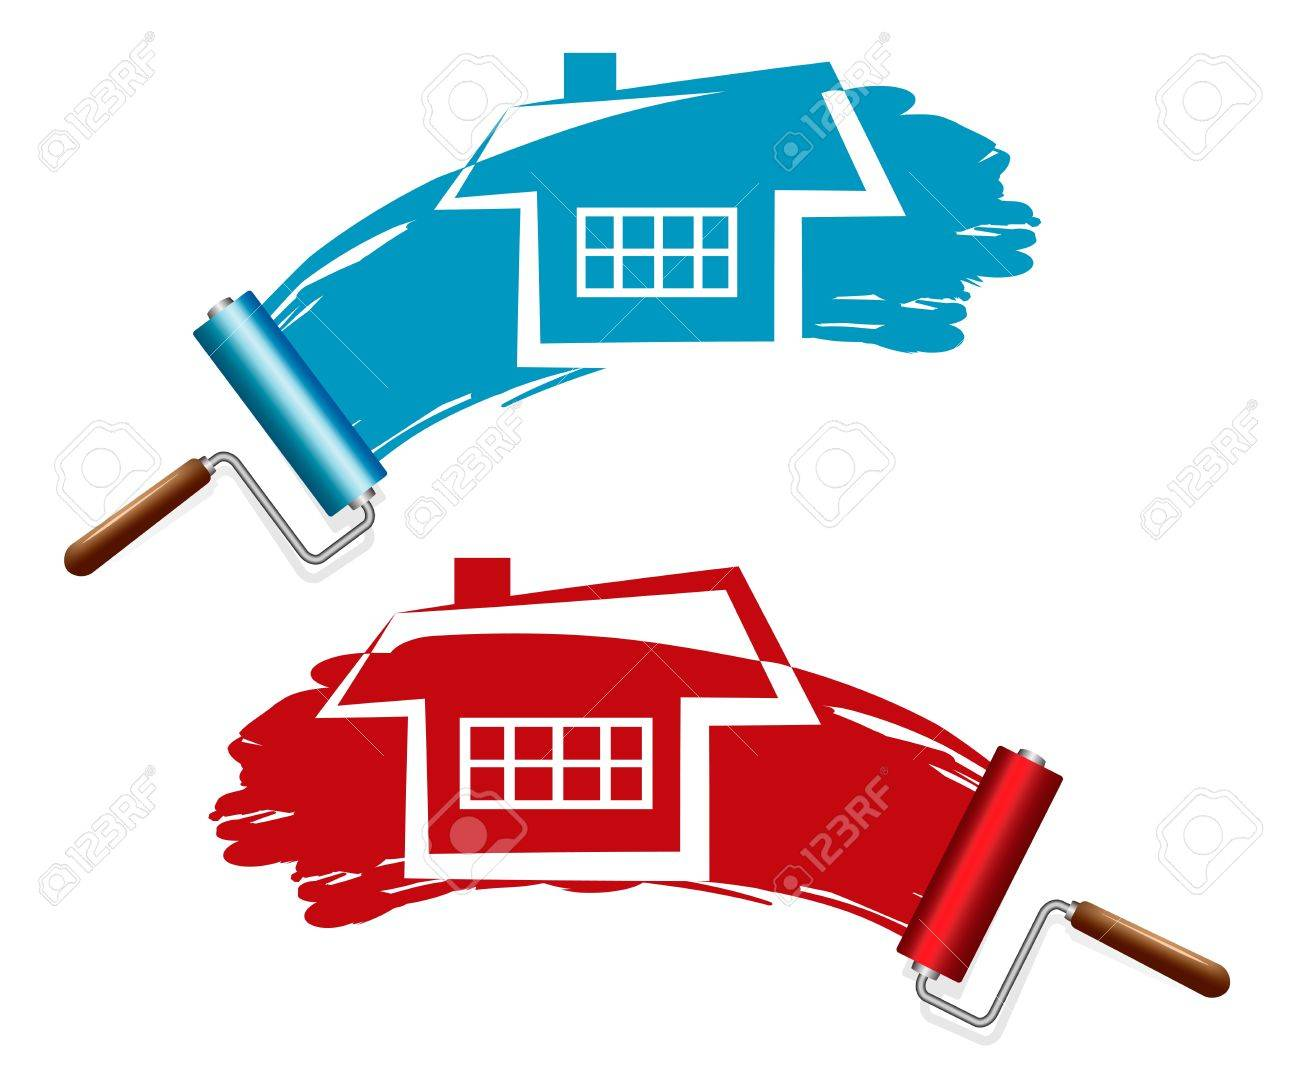 Painting the house  Paint Rollers Stock Vector - 20727727